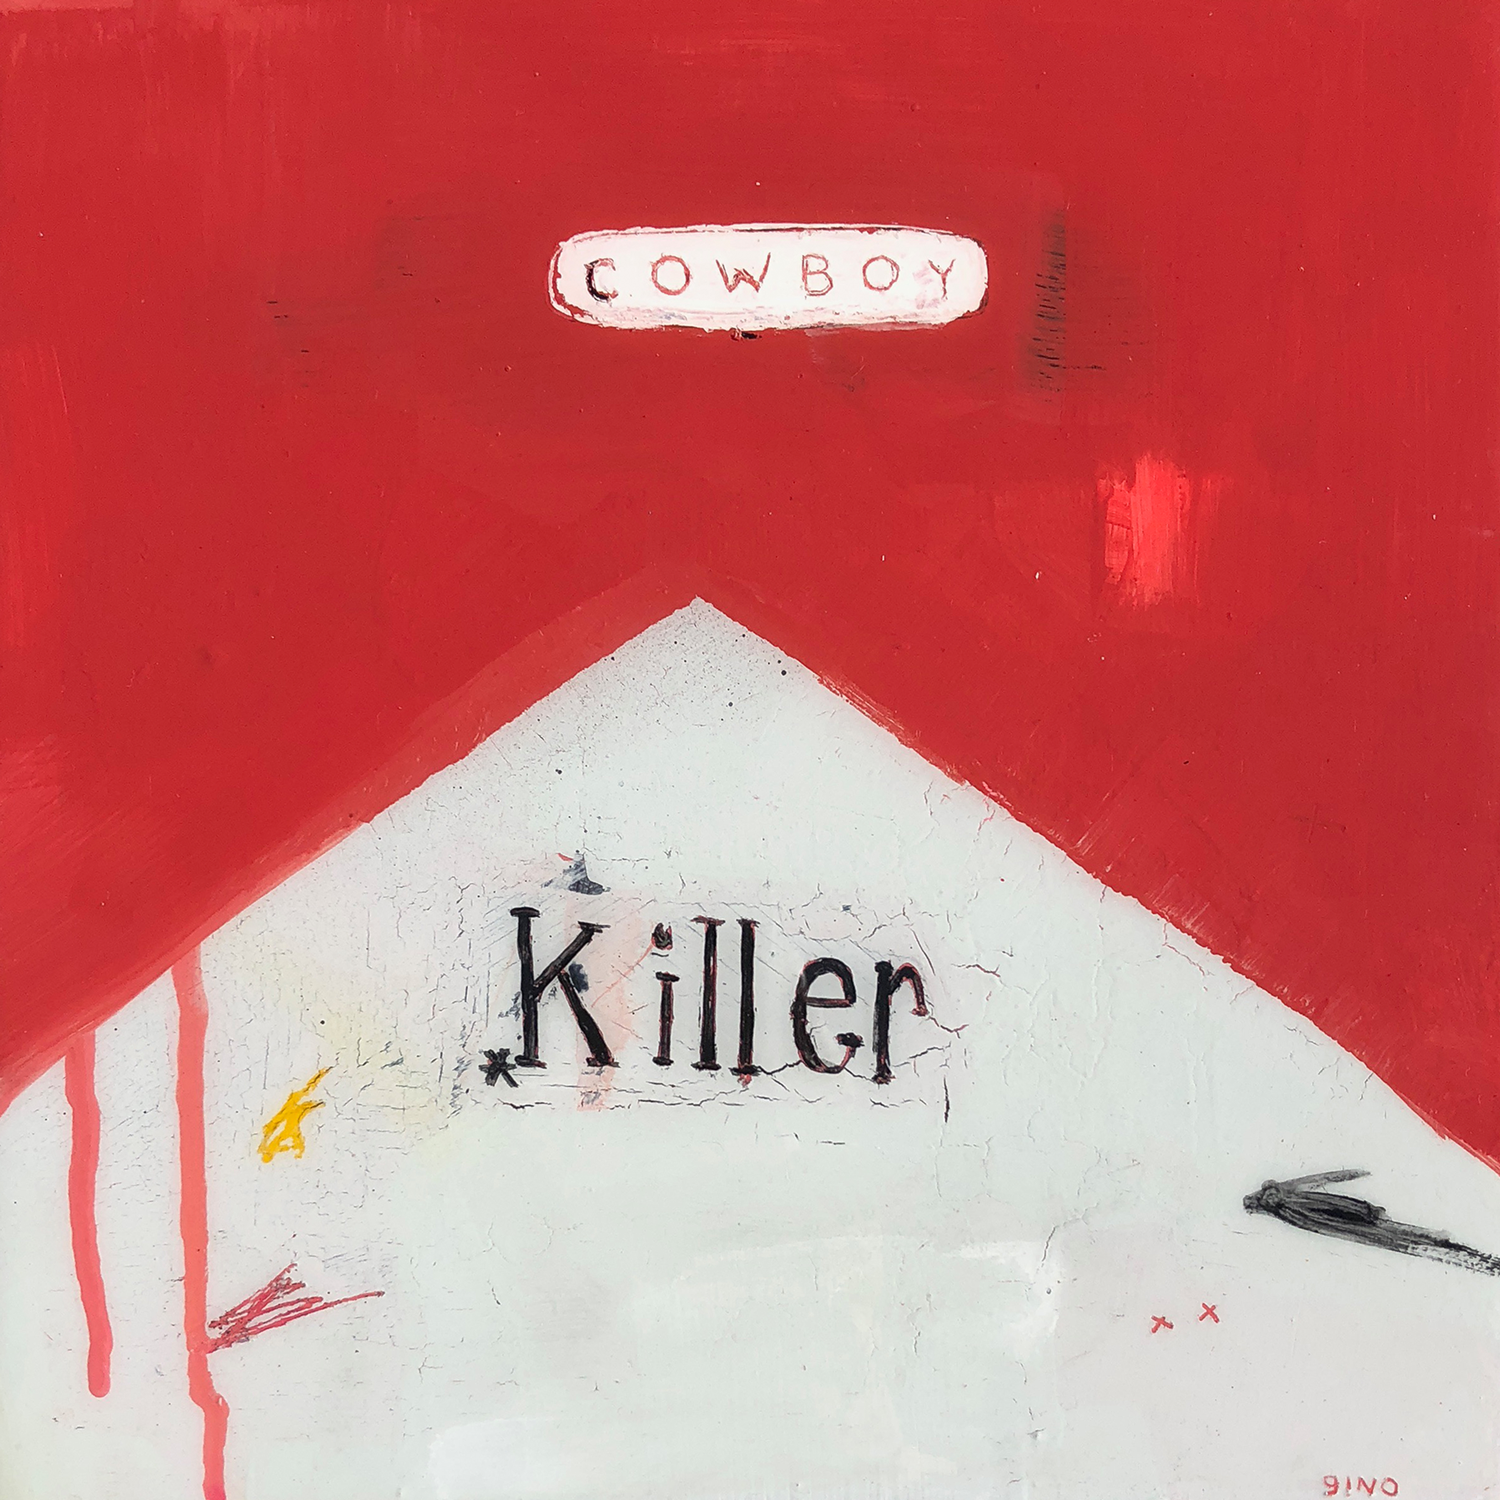 cowboy killer acrylic + pastel + resin / wood panel 10 x 10 in. 2018